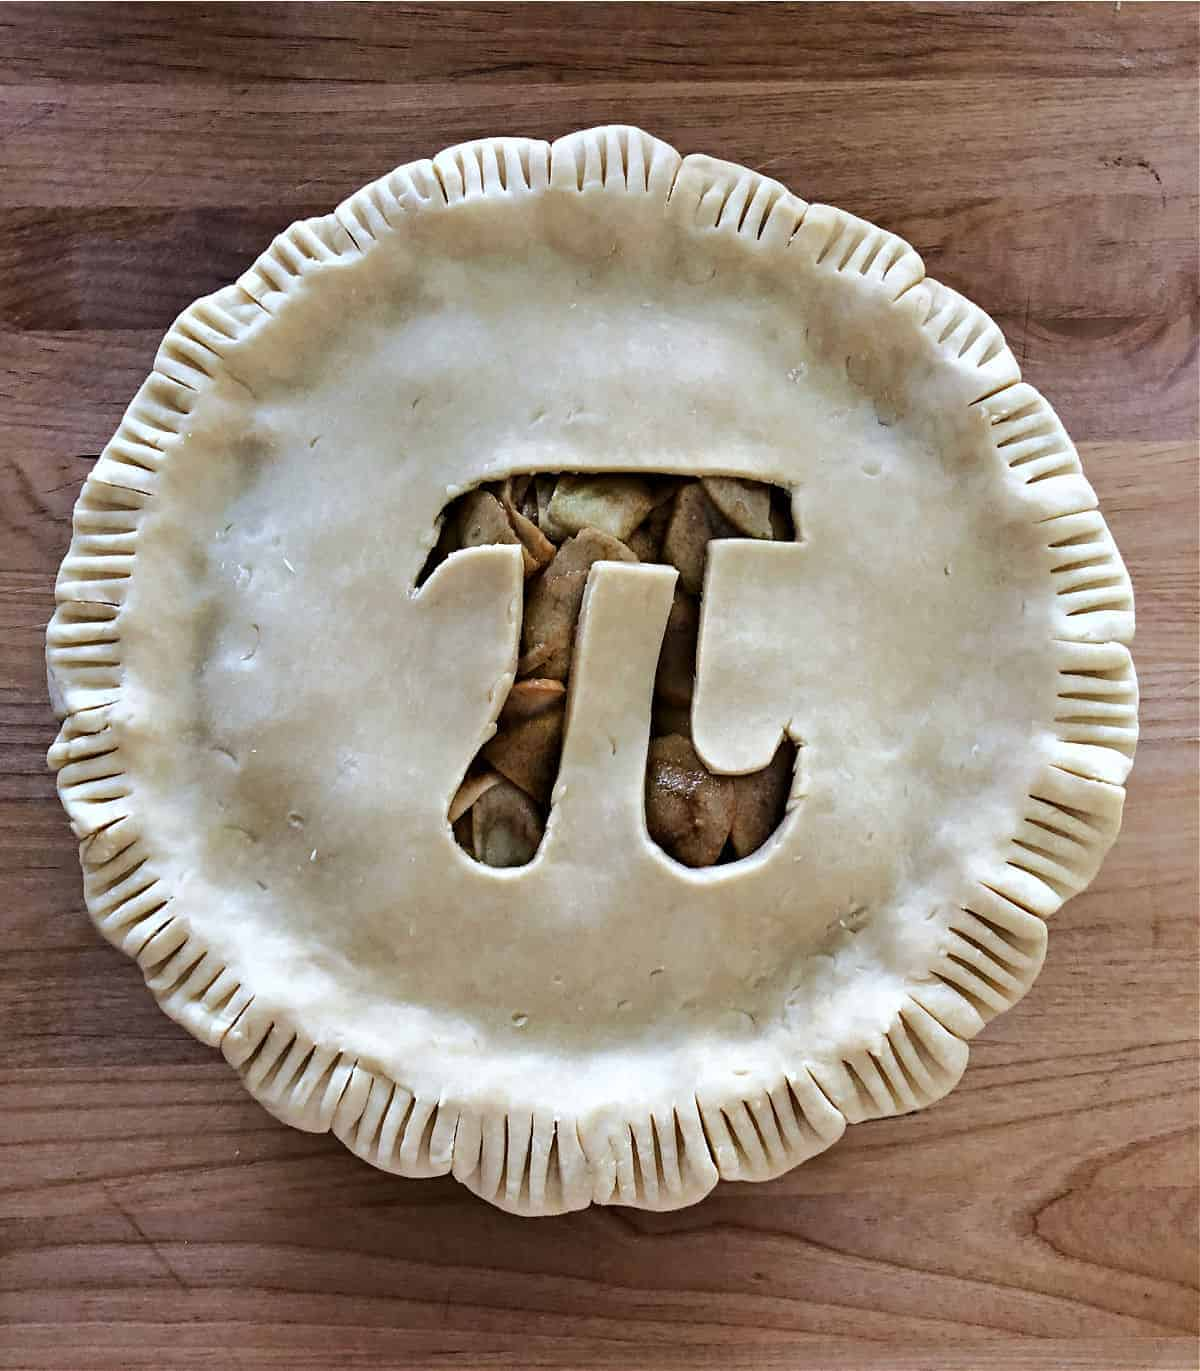 Apple Pie with a Pi image cutout on top crust